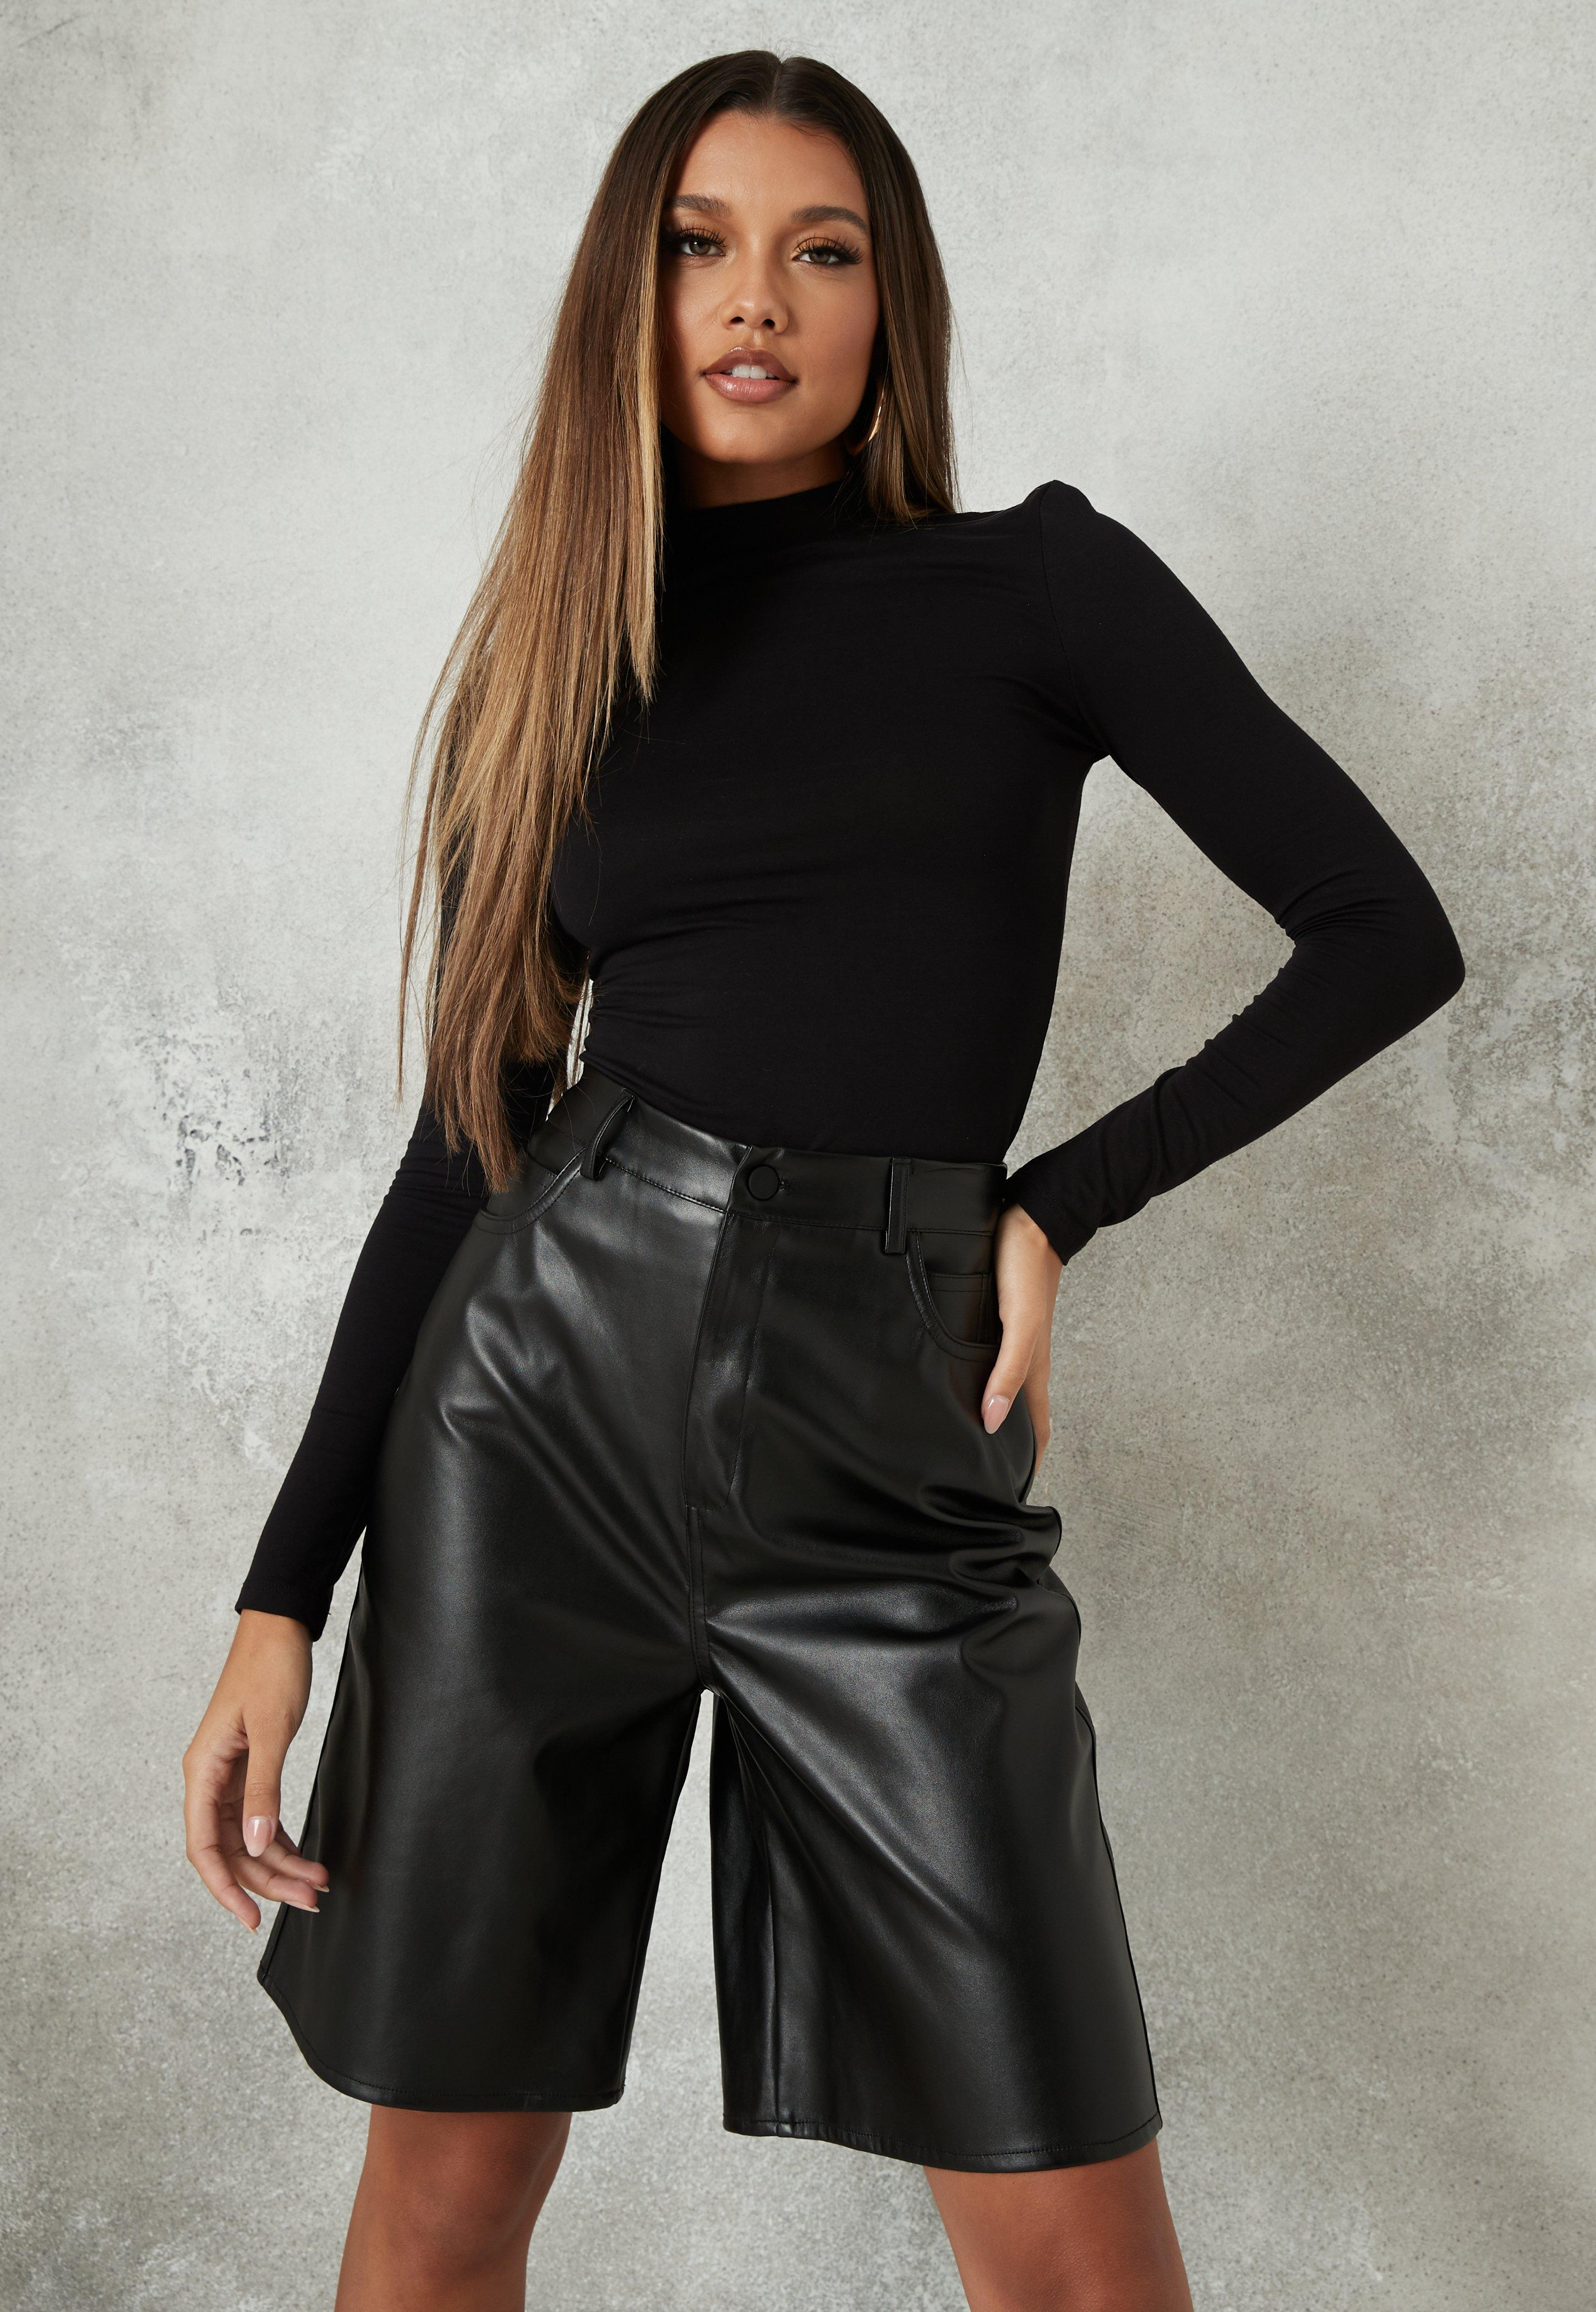 843445576434 T-Shirts & Women's Tees - Missguided